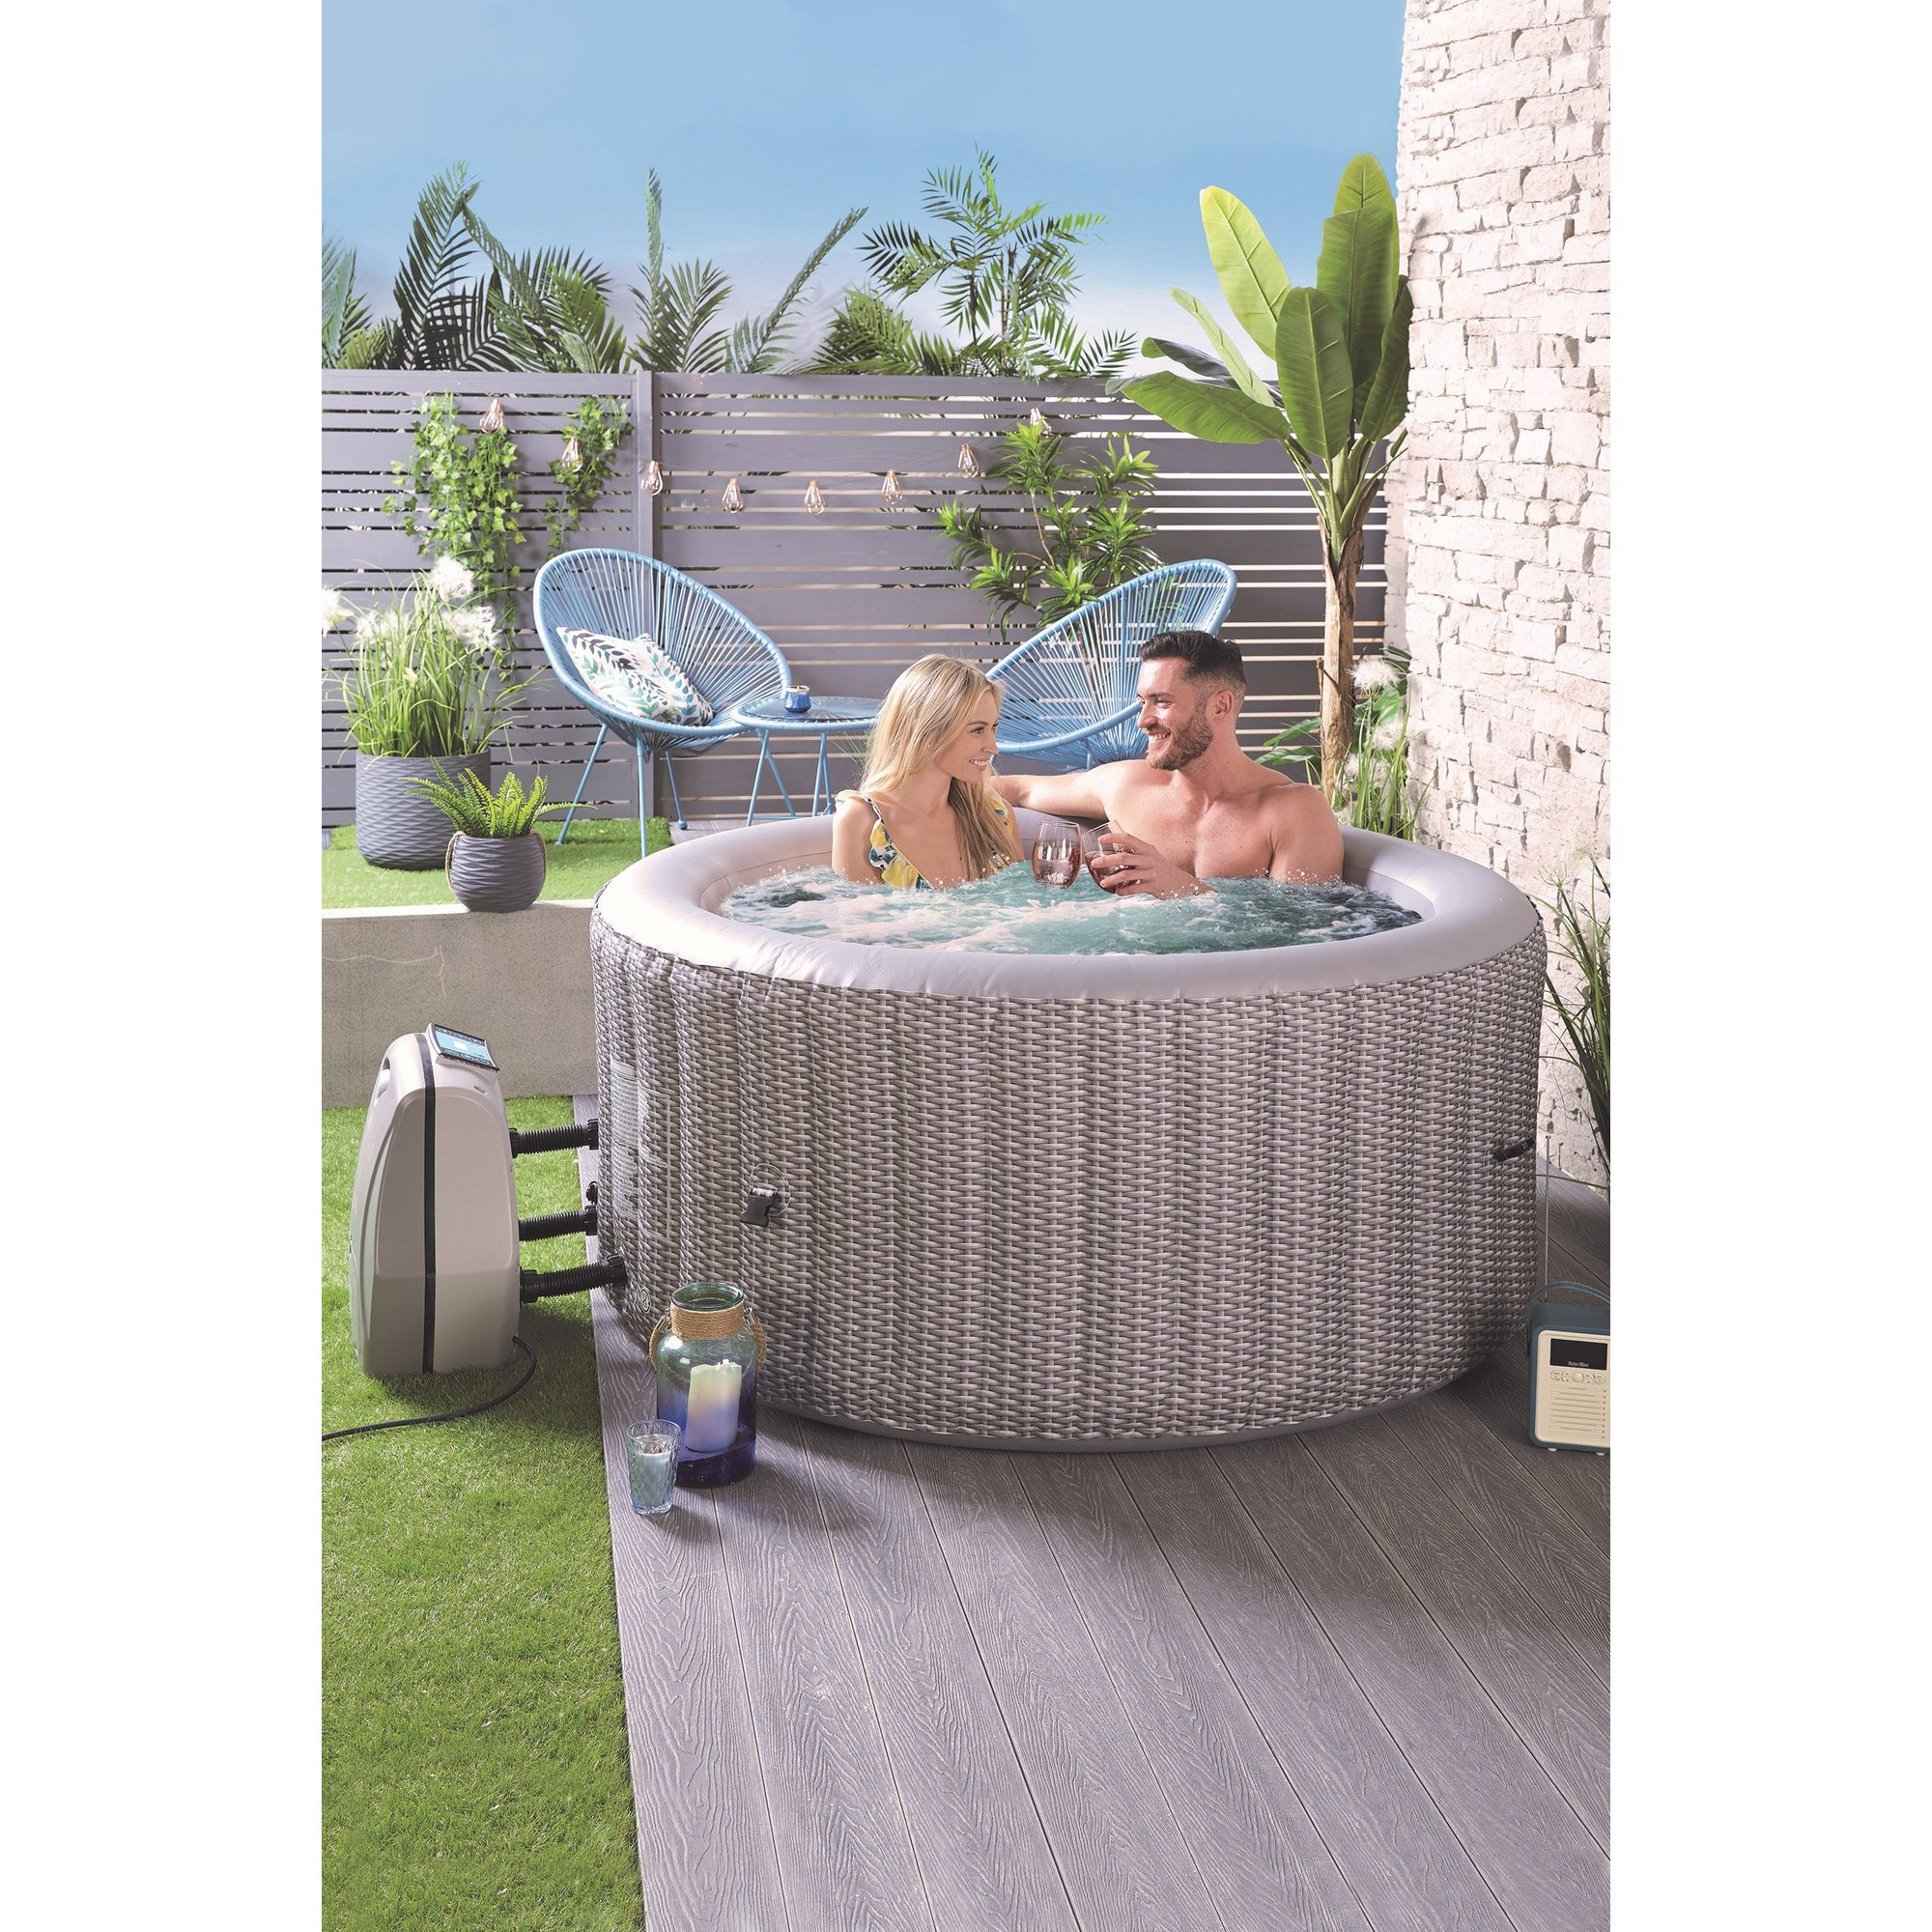 Image of 4 Person Round Rattan Effect Spa